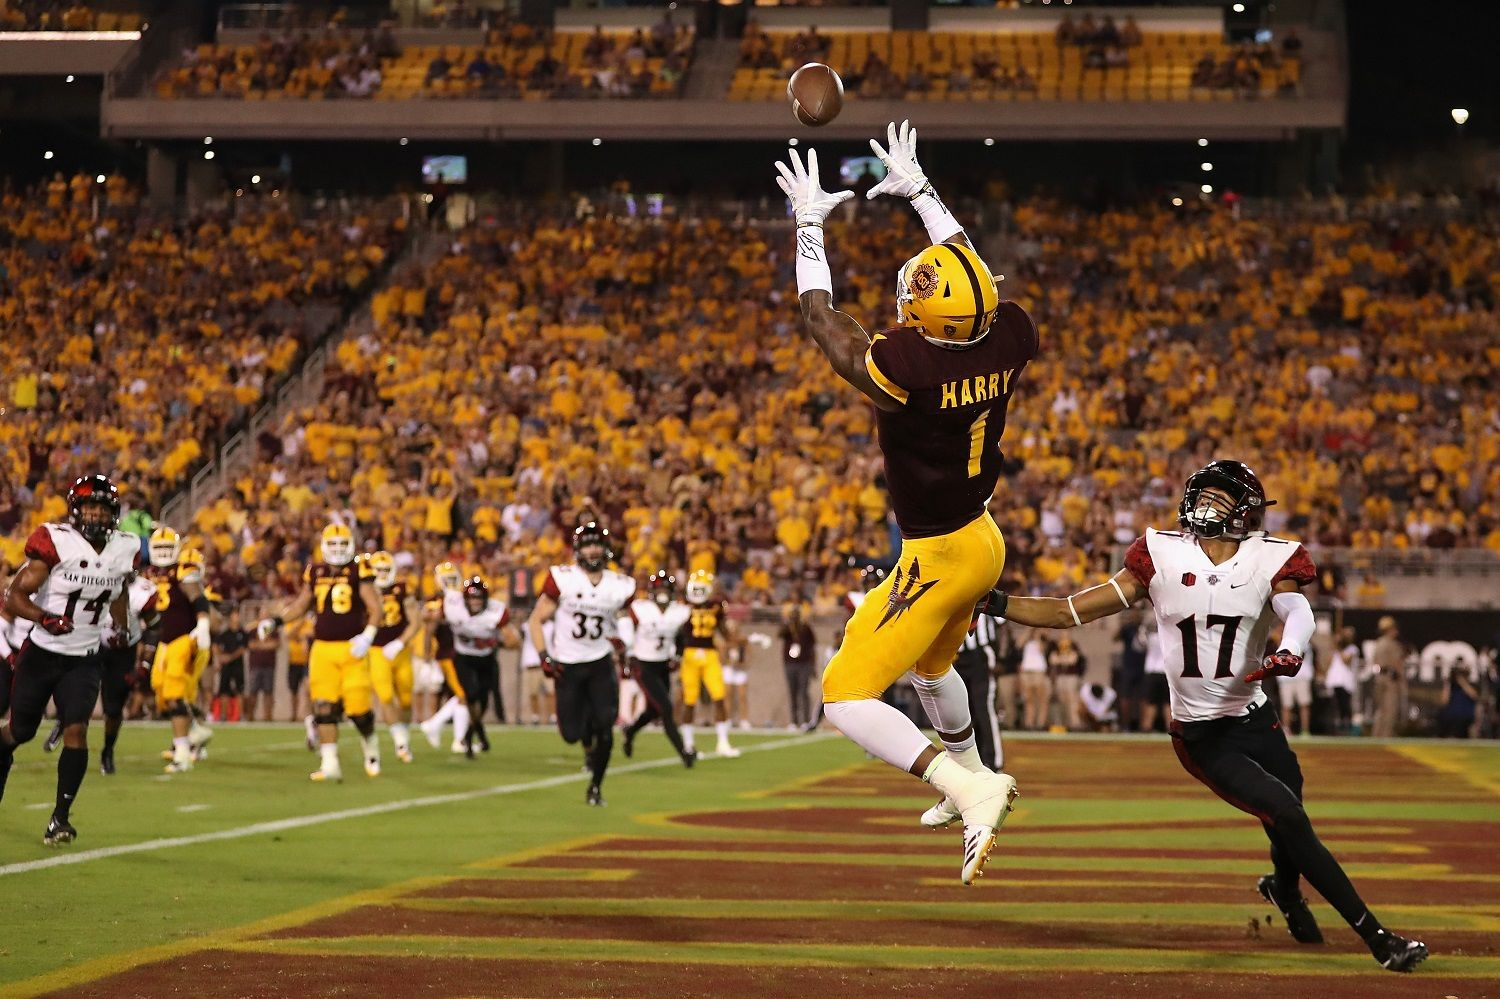 TEMPE, AZ - SEPTEMBER 09:  Wide receiver N'Keal Harry #1 of the Arizona State Sun Devils catches a five yard touchdown pass against cornerback Ron Smith #17 of the San Diego State Aztecs during the first half of the college football game at Sun Devil Stadium on September 9, 2017 in Tempe, Arizona.  (Photo by Christian Petersen/Getty Images)